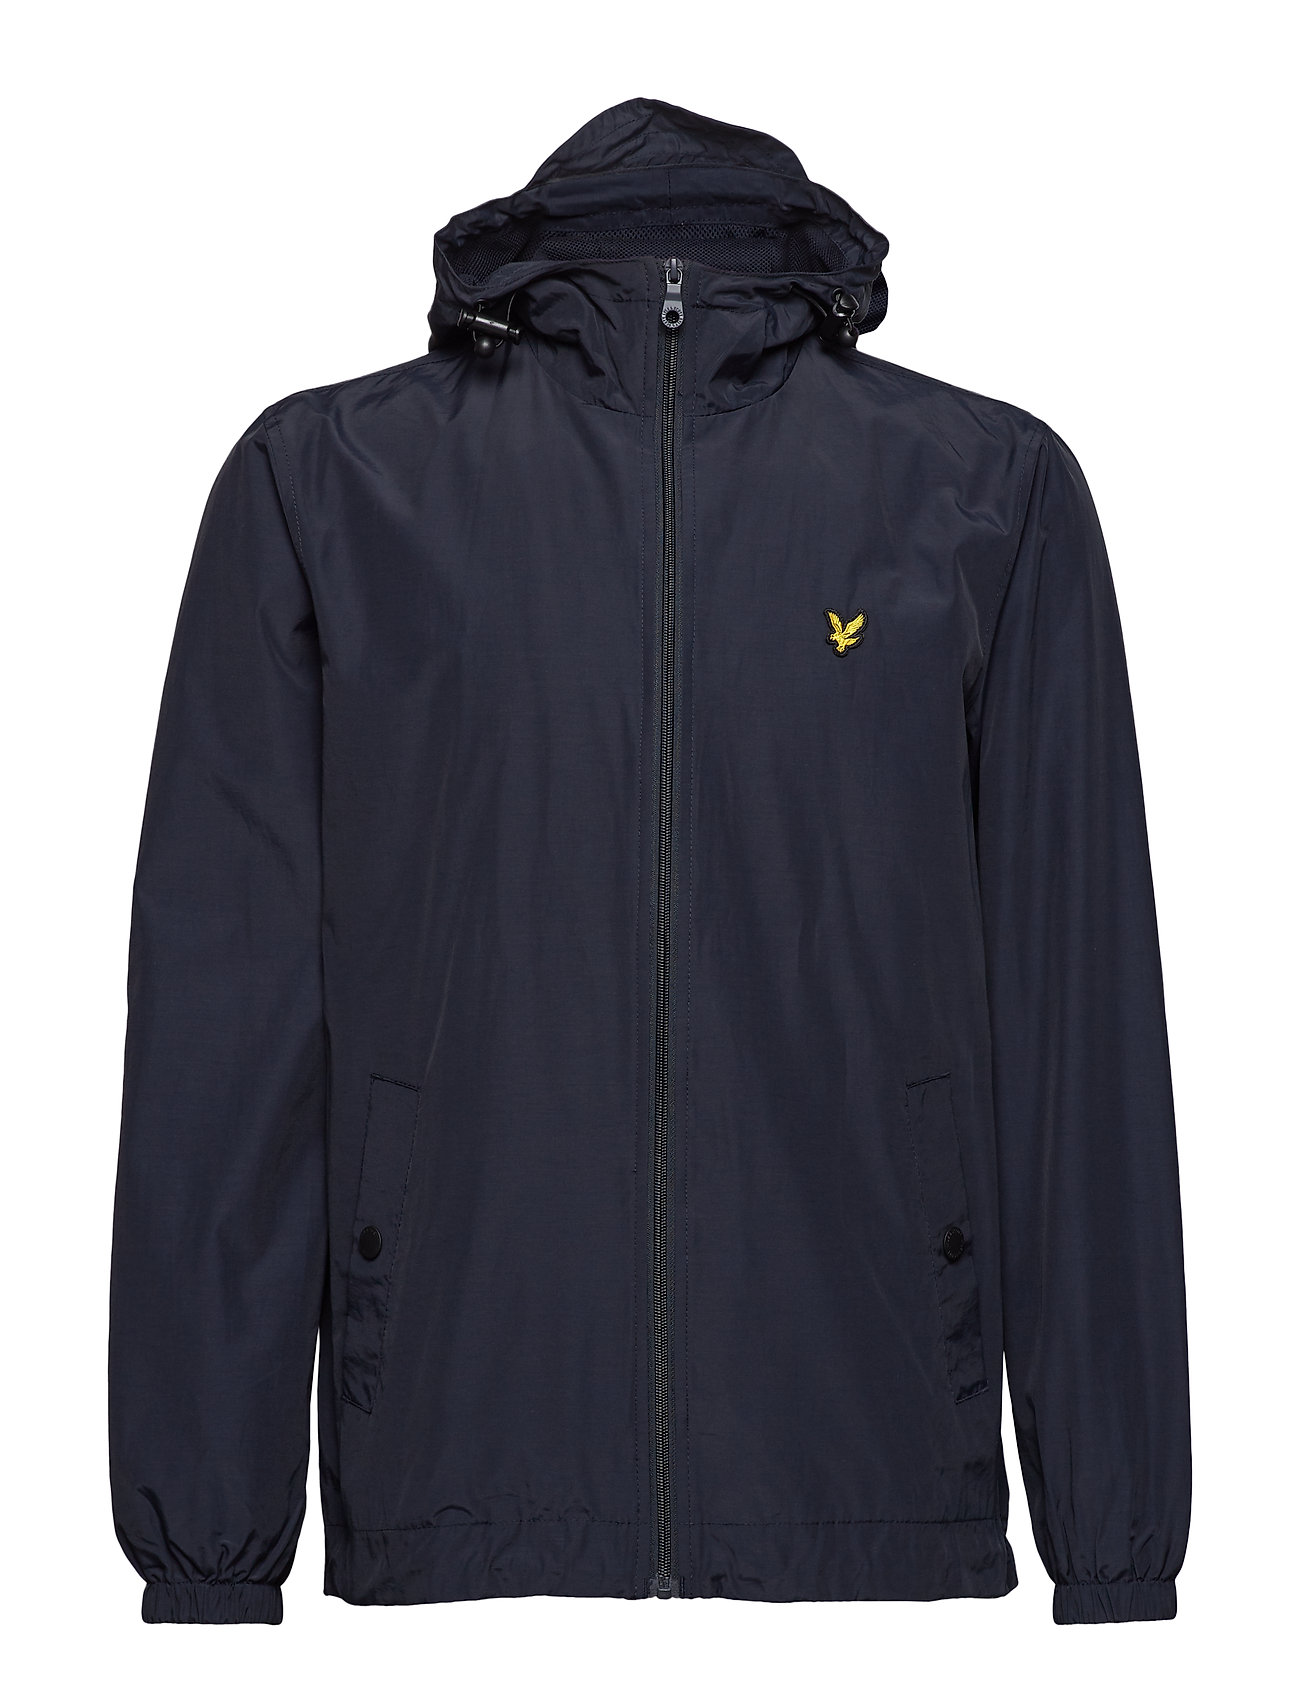 Lyle & Scott Zip Through Hooded Jacket - DARK NAVY